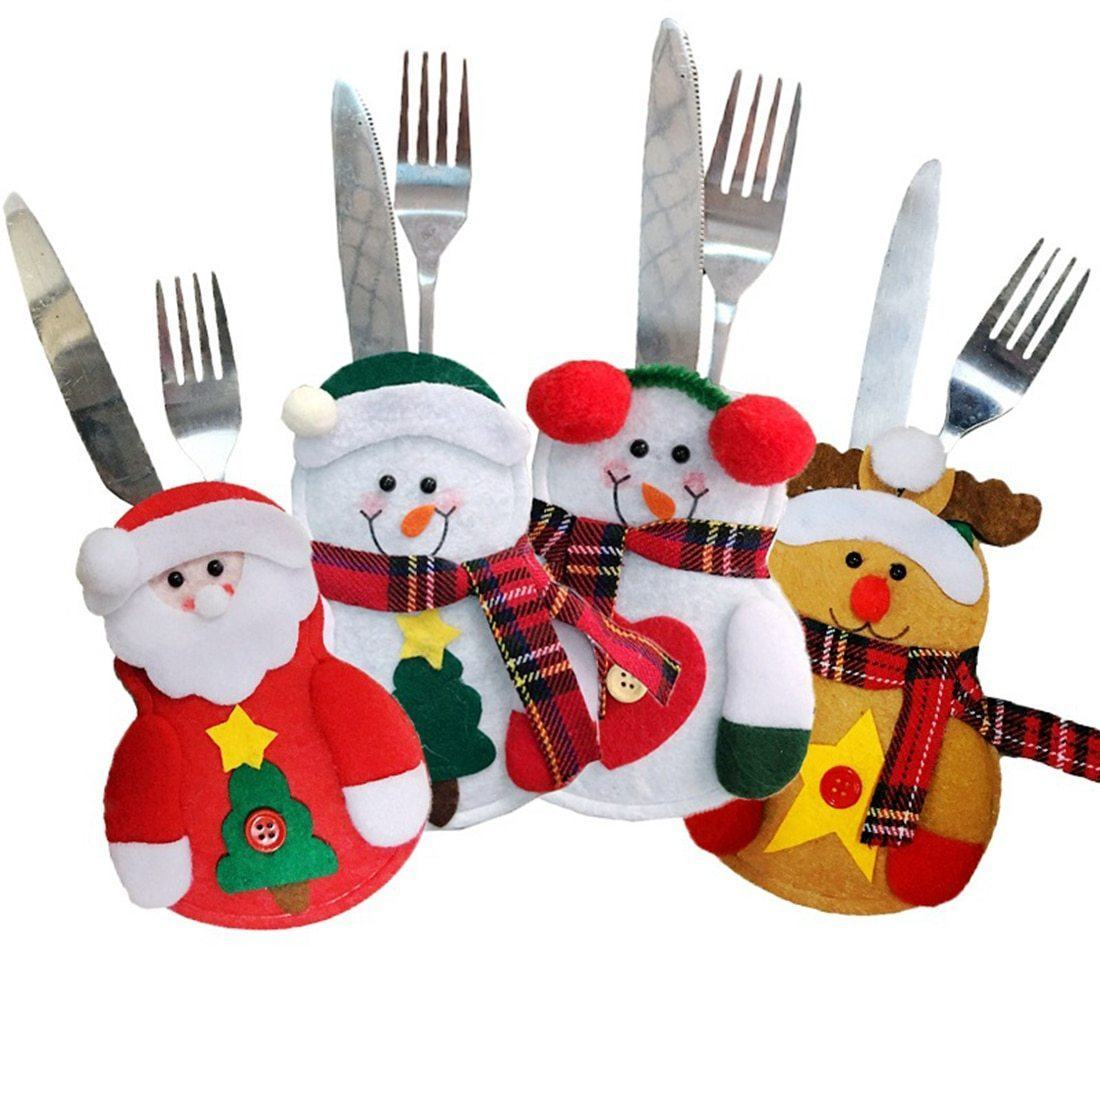 Christmas Silverware Set